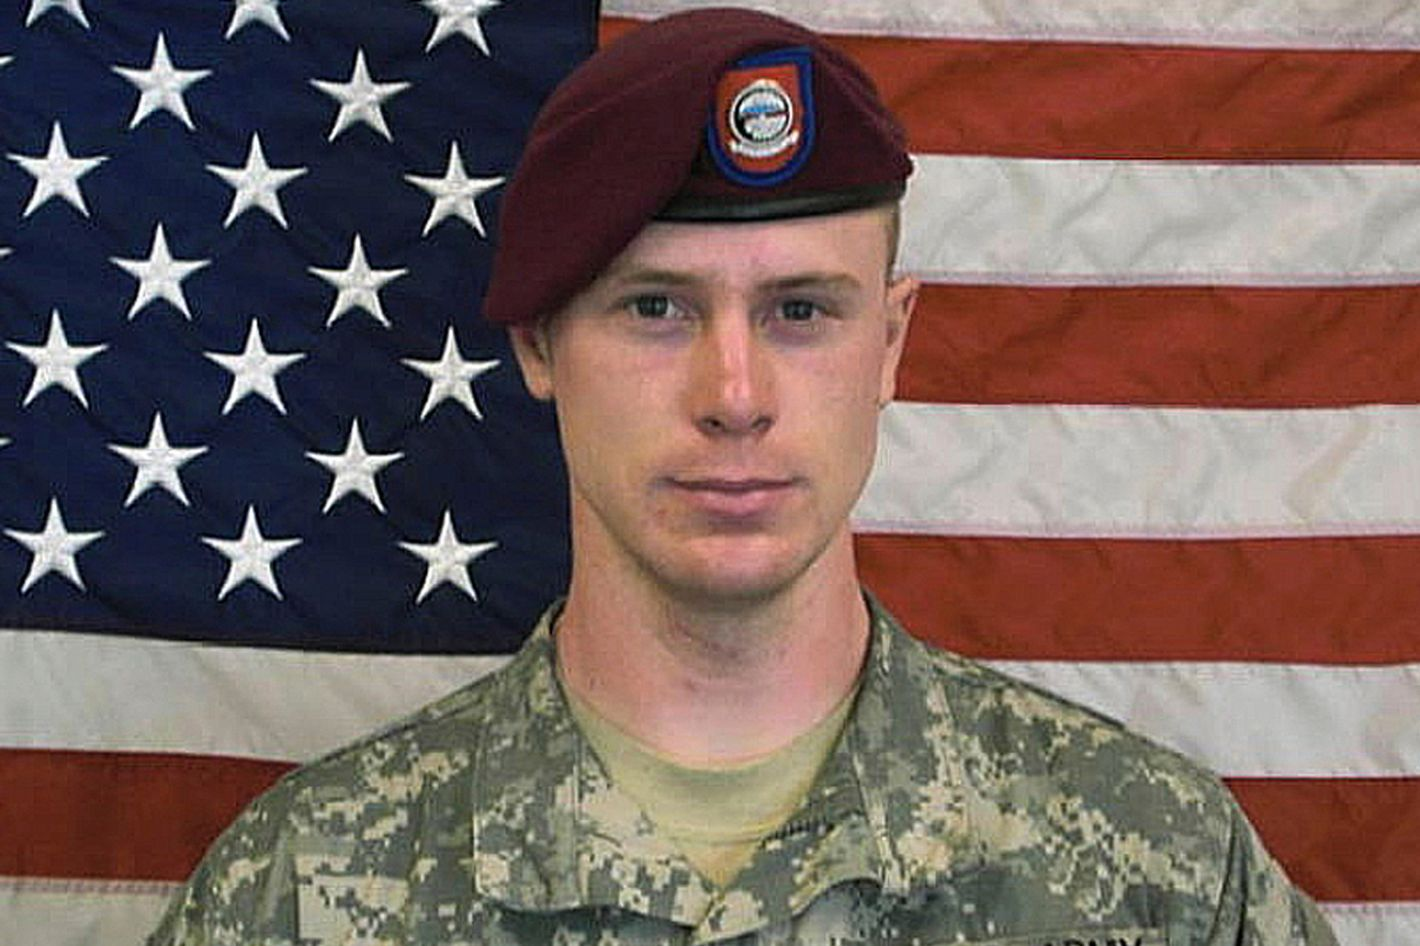 This undated image provided by the U.S. Army shows Sgt. Bowe Bergdahl. U.S. officials say the only American soldier held prisoner in Afghanistan has been freed and is in U.S. custody. The officials say Sgt. Bowe Bergdahl's (boh BURG'-dahl) release was part of a negotiation that includes the release of five Afghan detainees held in the U.S. prison at Guantanamo Bay, Cuba.